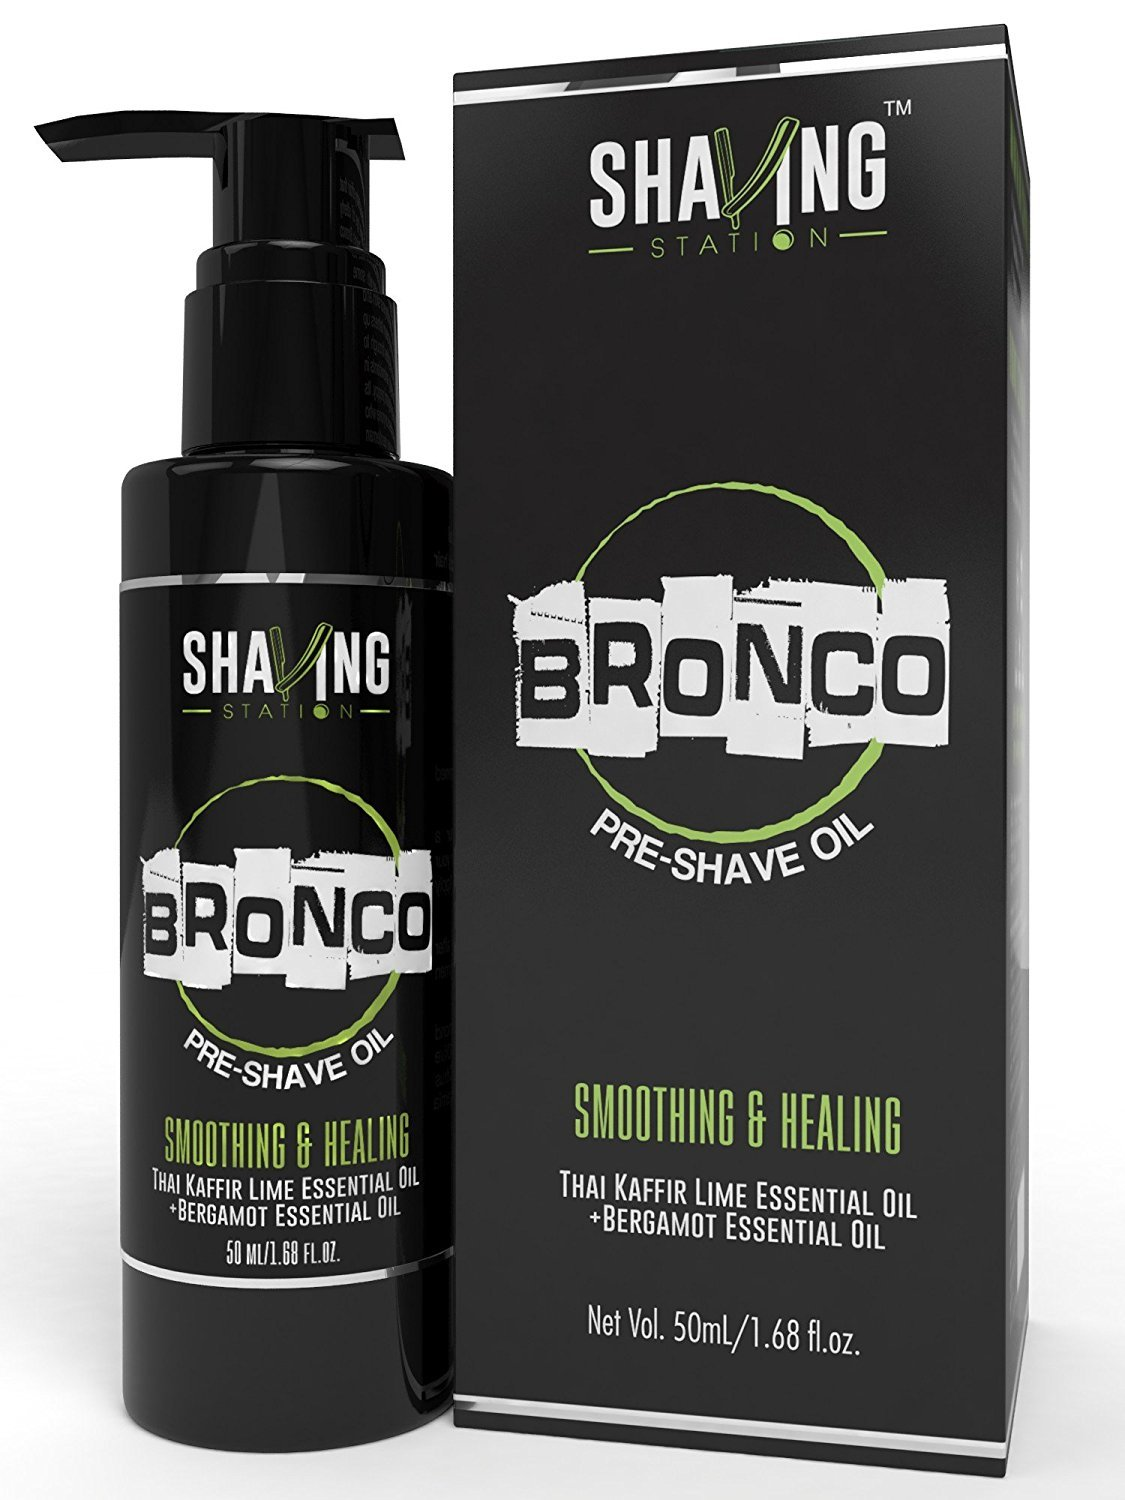 Shaving Station - Pre Shave Oil - Paraben & Sulphate Free - 50ml - Thai Kafir Lime & Bergamot